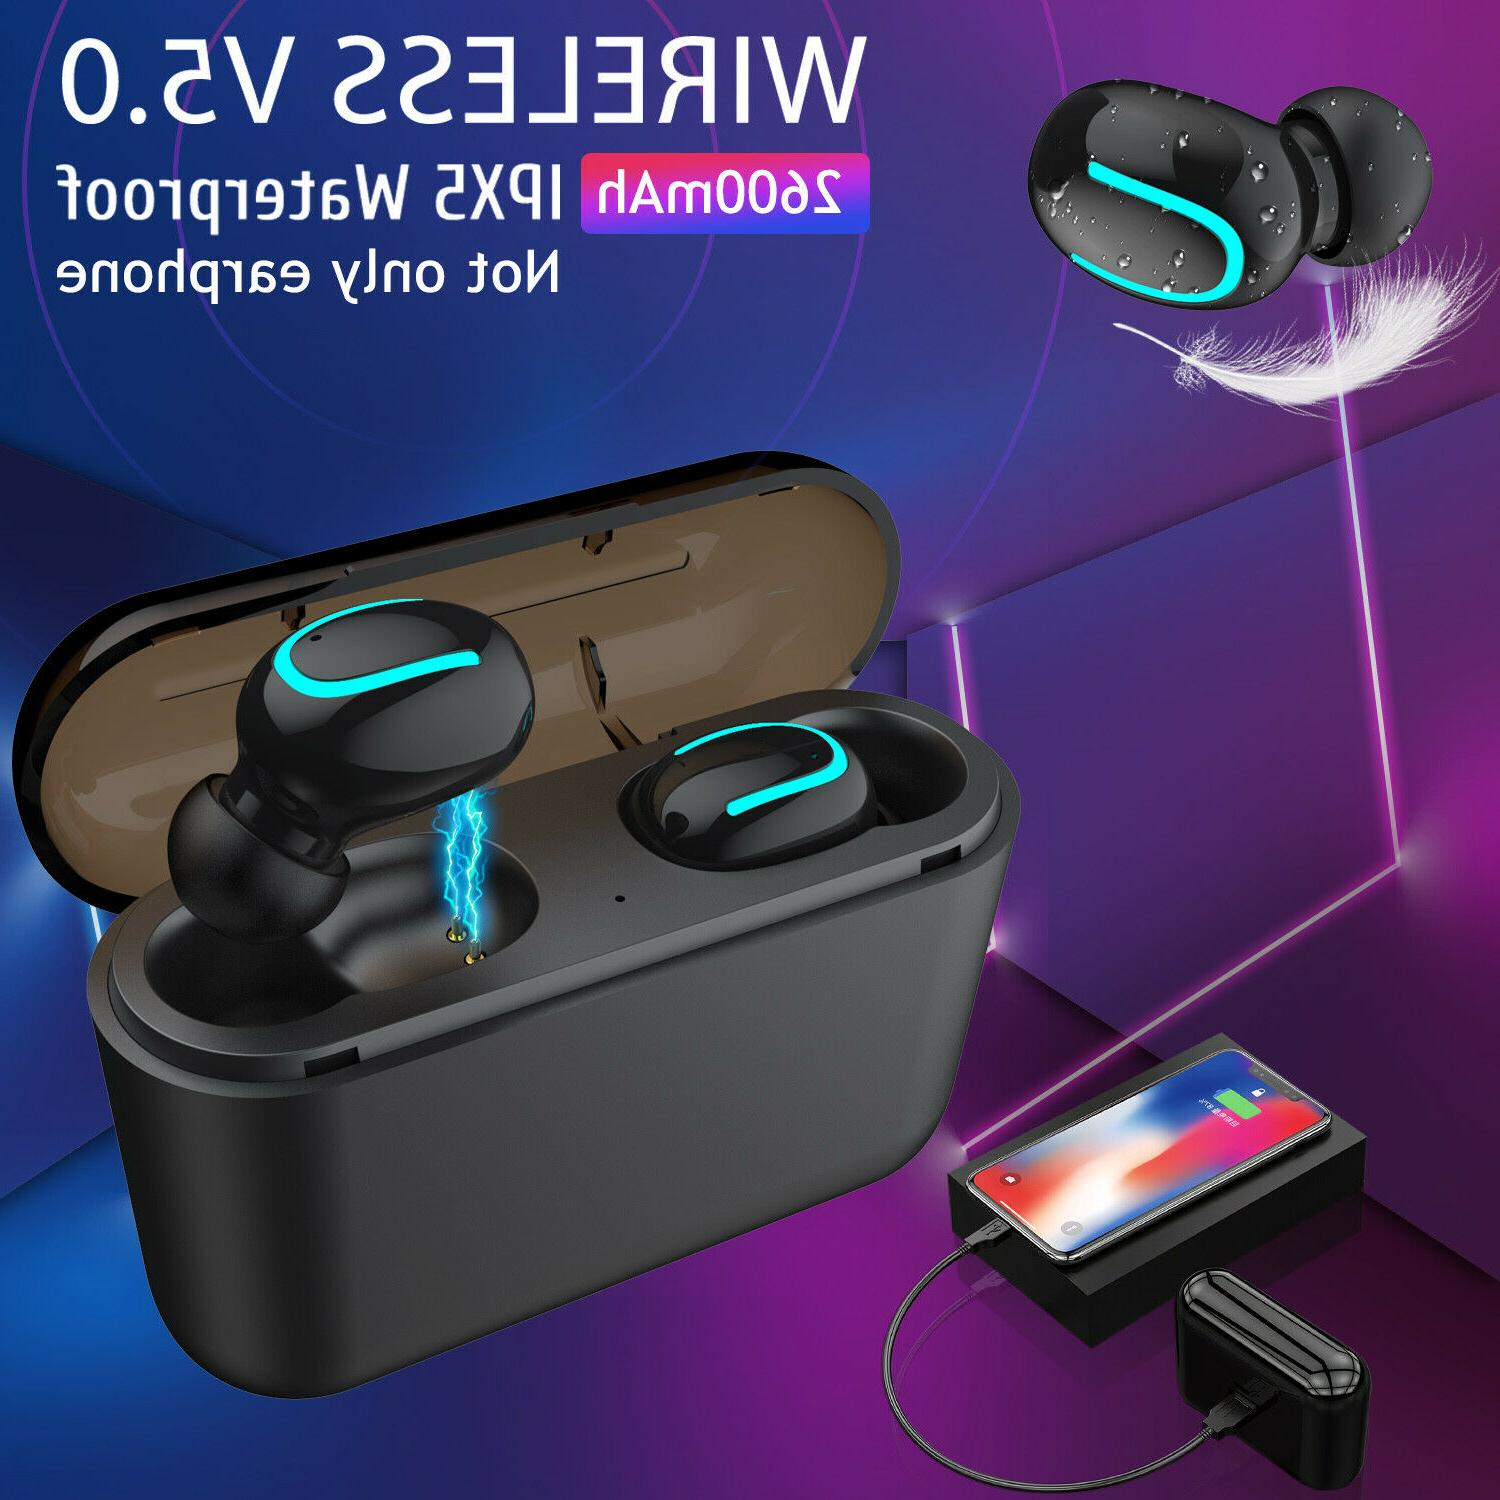 For 10 Wireless Earbuds